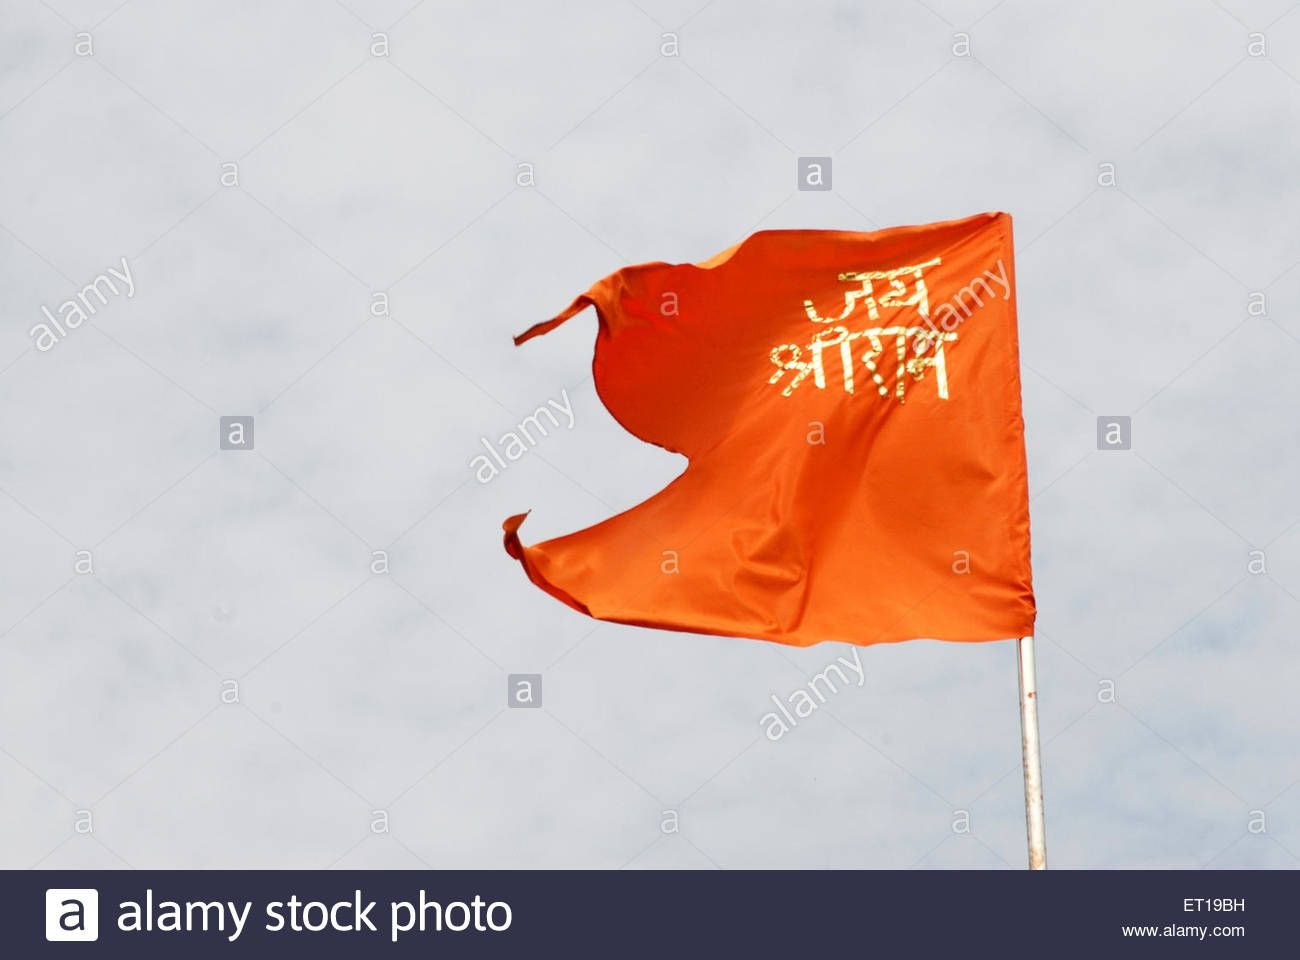 Download This Stock Image Orange Flag Name Of God Jay Shree Ram Et19bh From Alamy S Library Of Millions Of High Resoluti Jay Shree Ram Flags With Names Flag